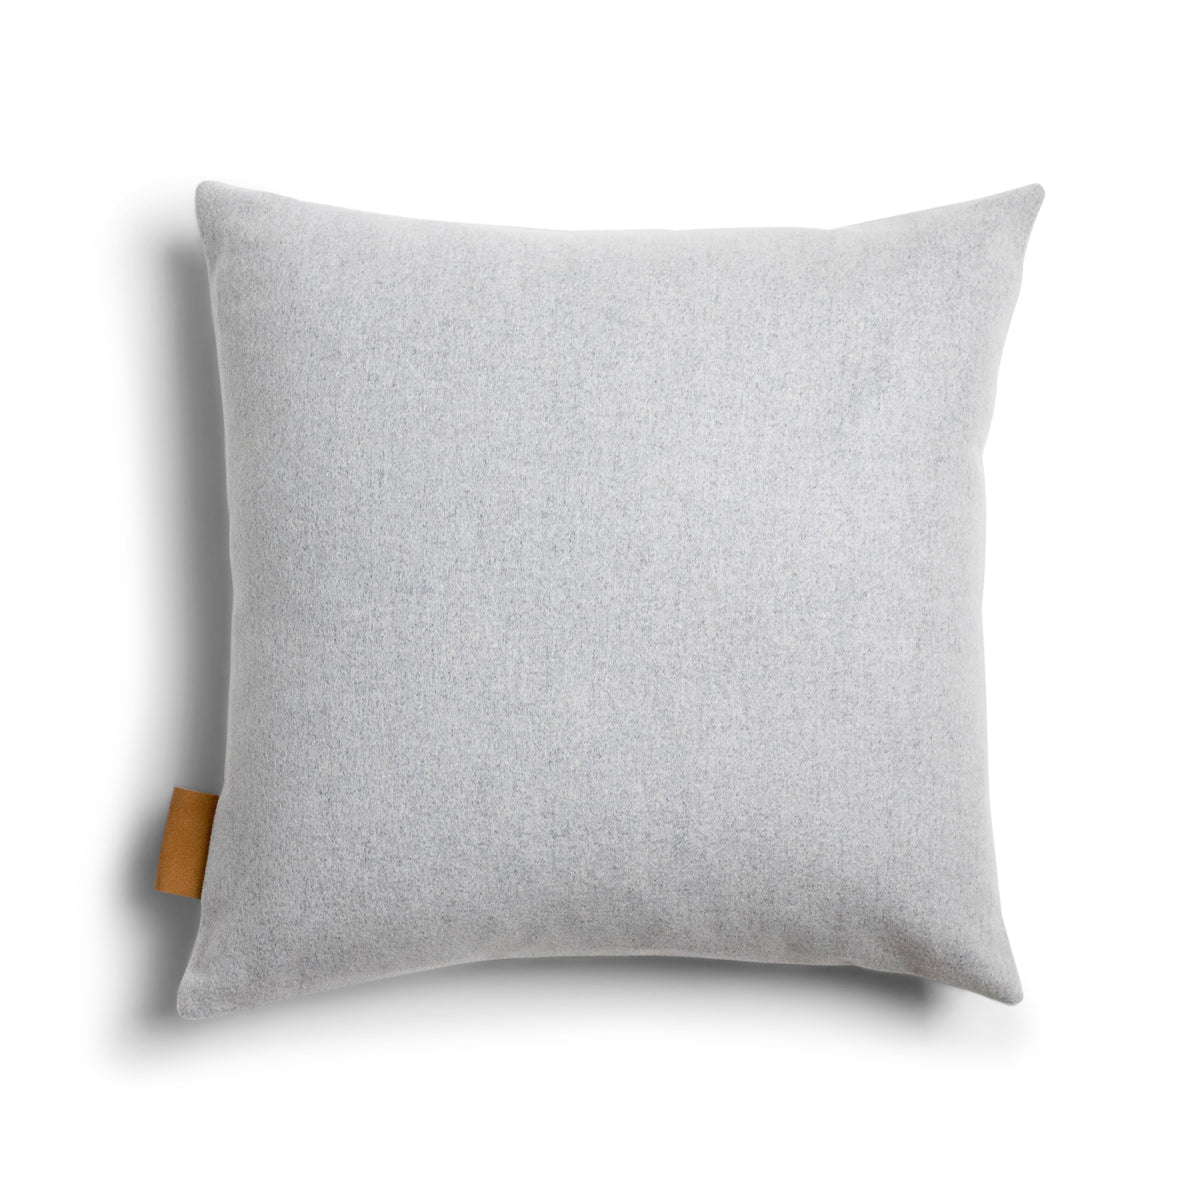 Frankie Cushion Square - Light Grey